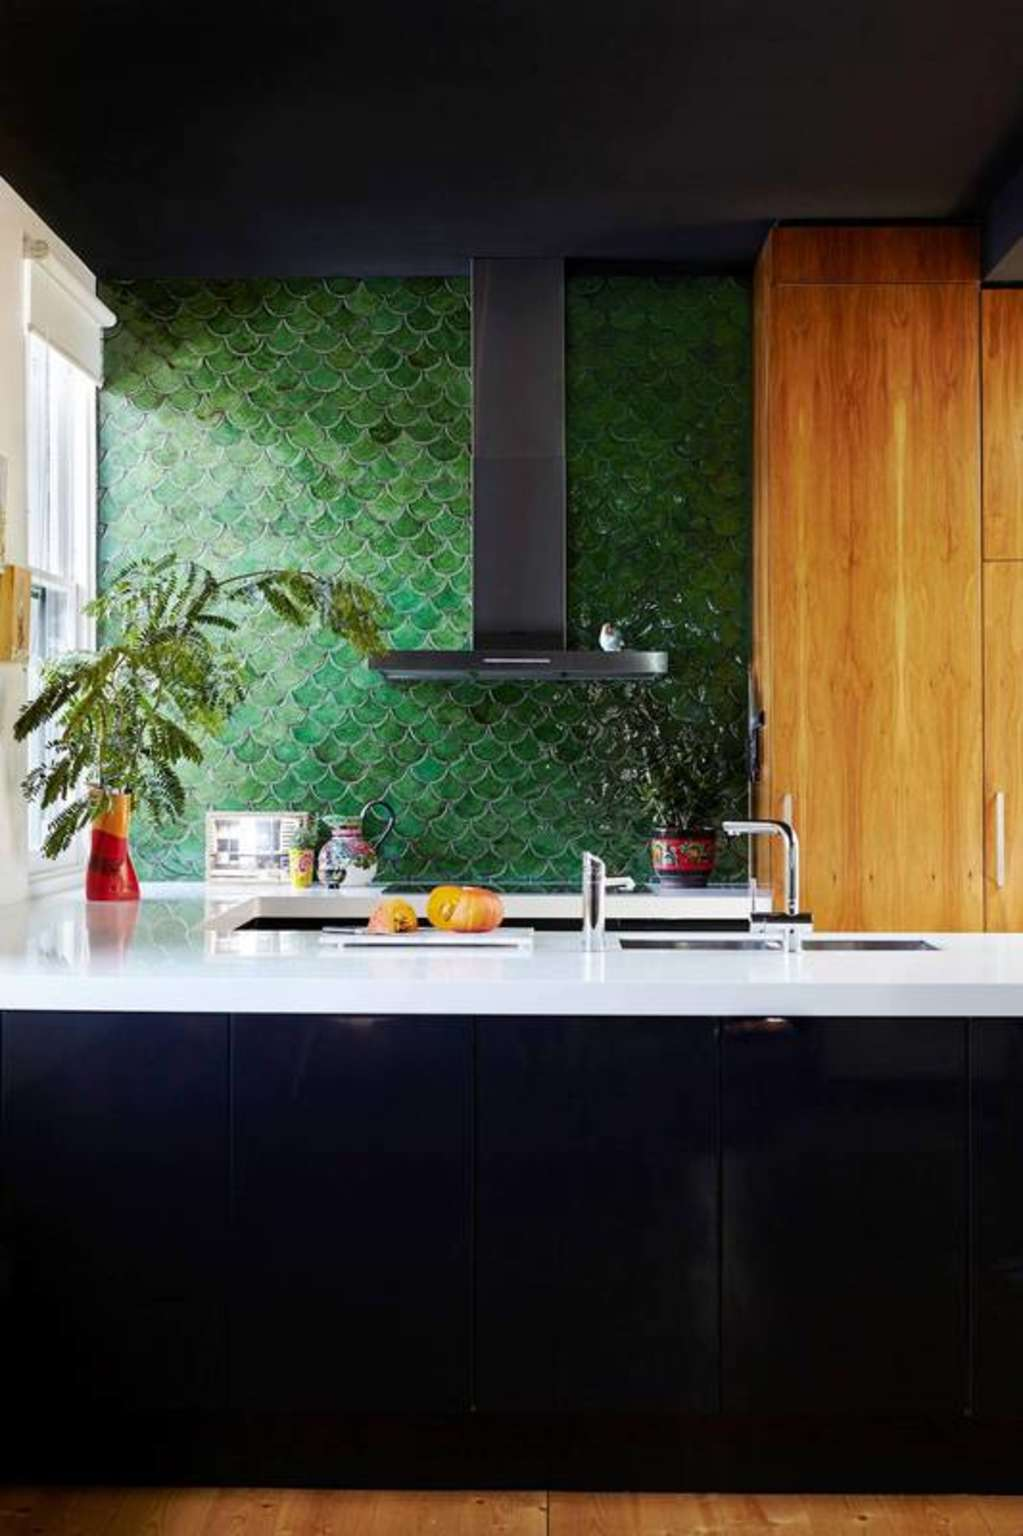 The Hottest Tile Trend Has Everything to Do With Mermaids